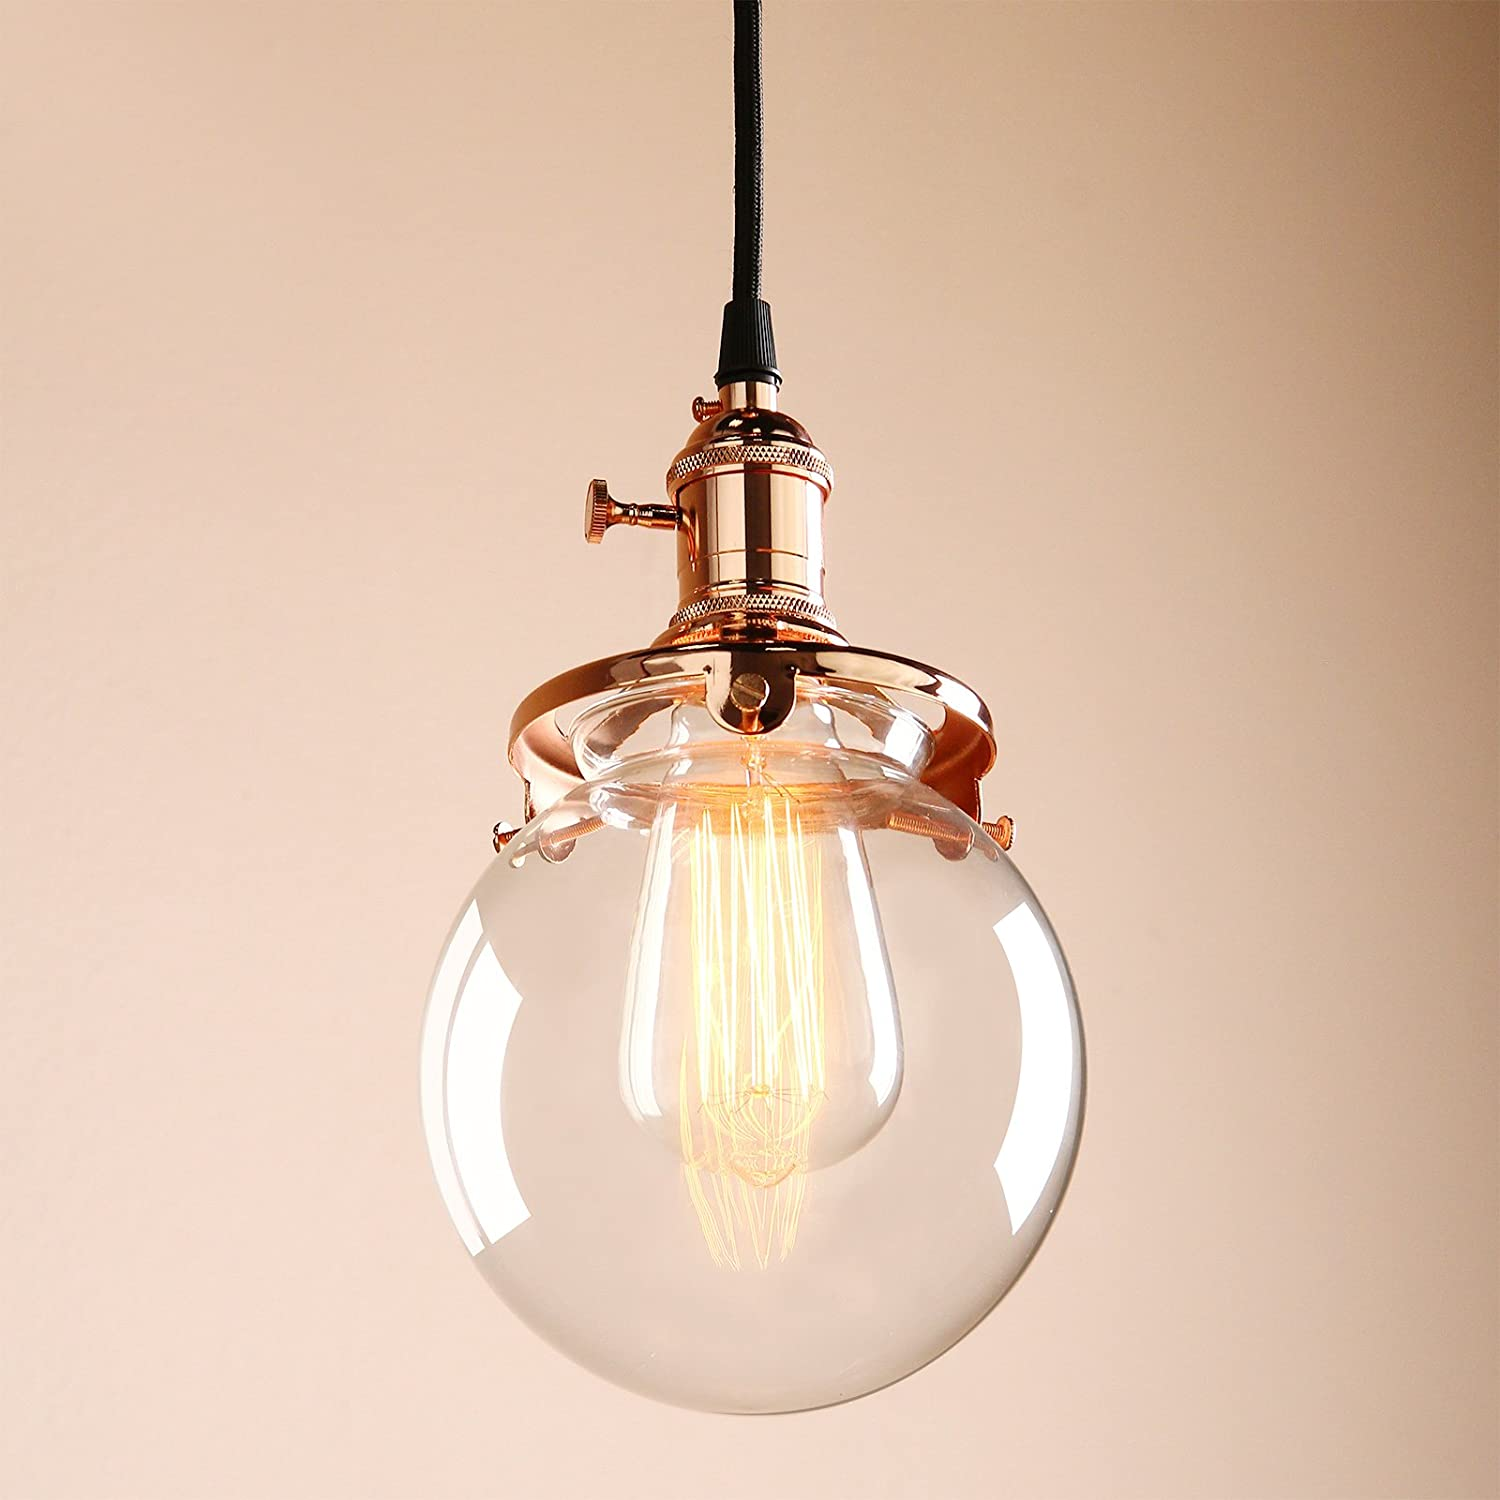 Permo vintage industrial pendant light fixture mini 59 round permo vintage industrial pendant light fixture mini 59 round clear glass globe hand blown shade copper amazon arubaitofo Image collections